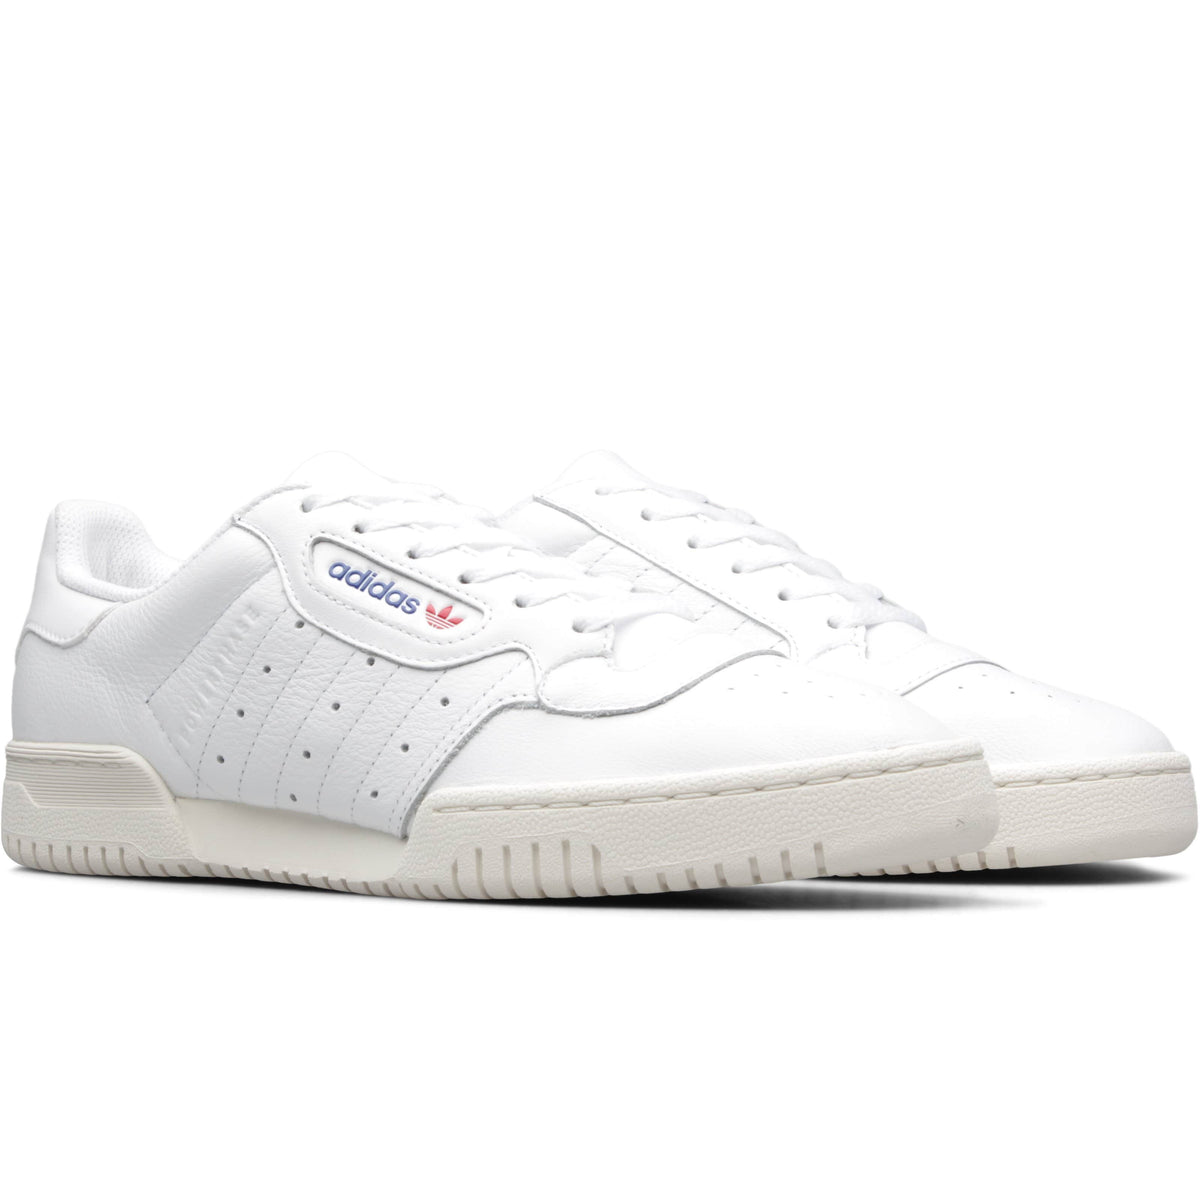 POWERPHASE Cloud White/Cloud White/Off